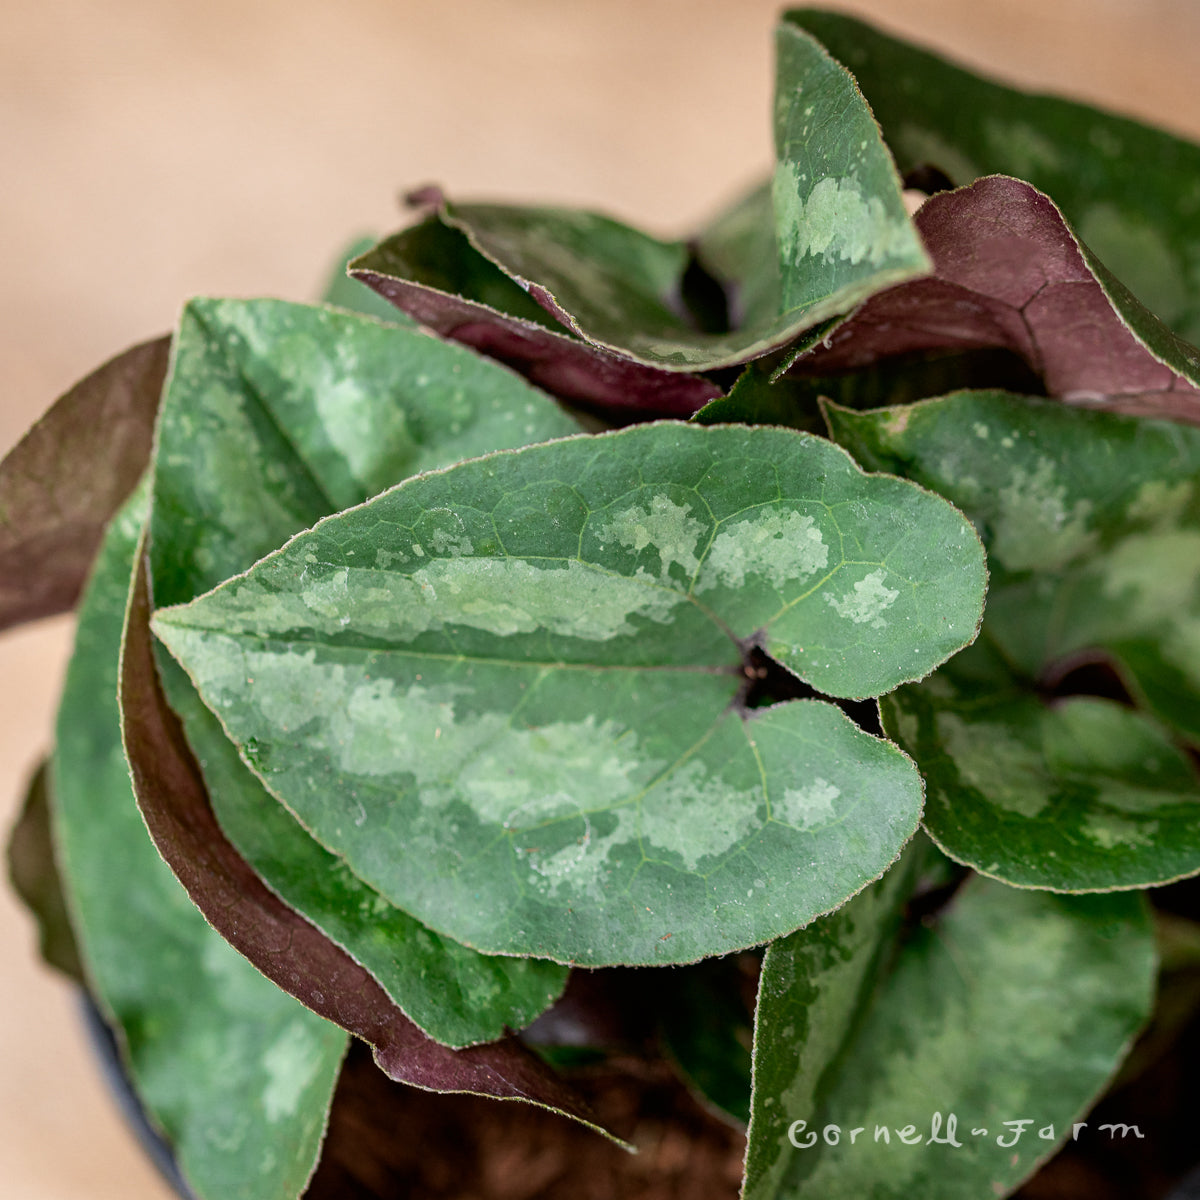 Asarum splendens Qrt